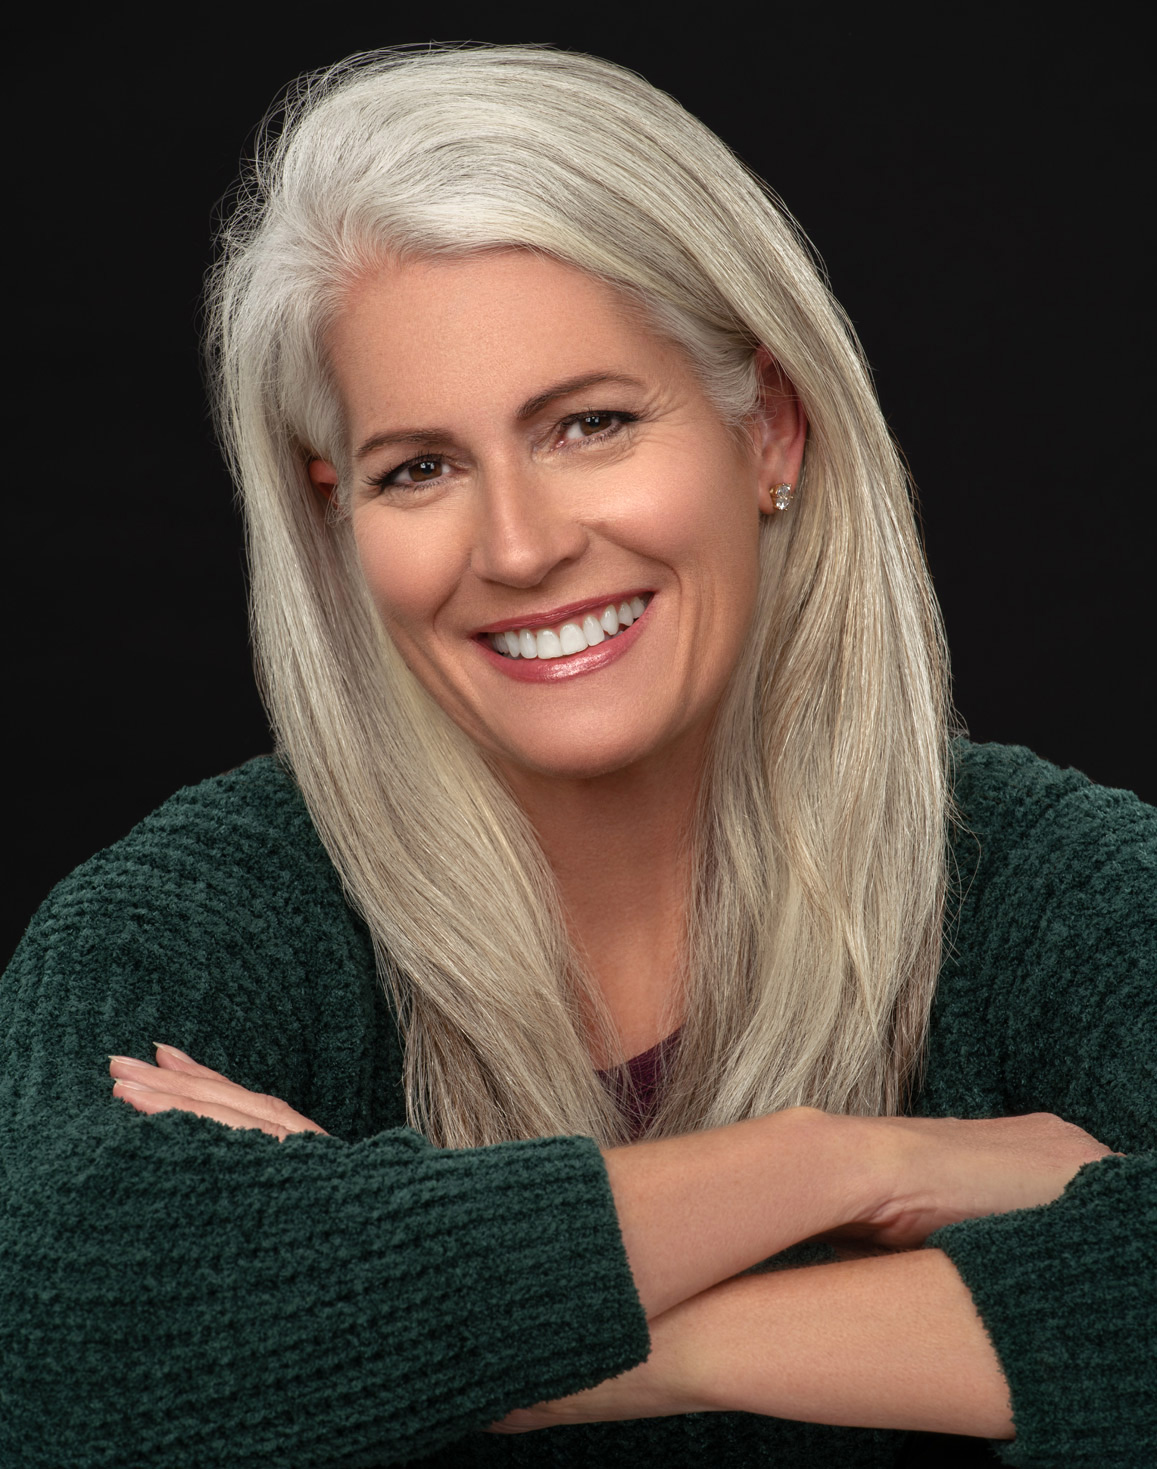 mature woman headshot portrait silver hair